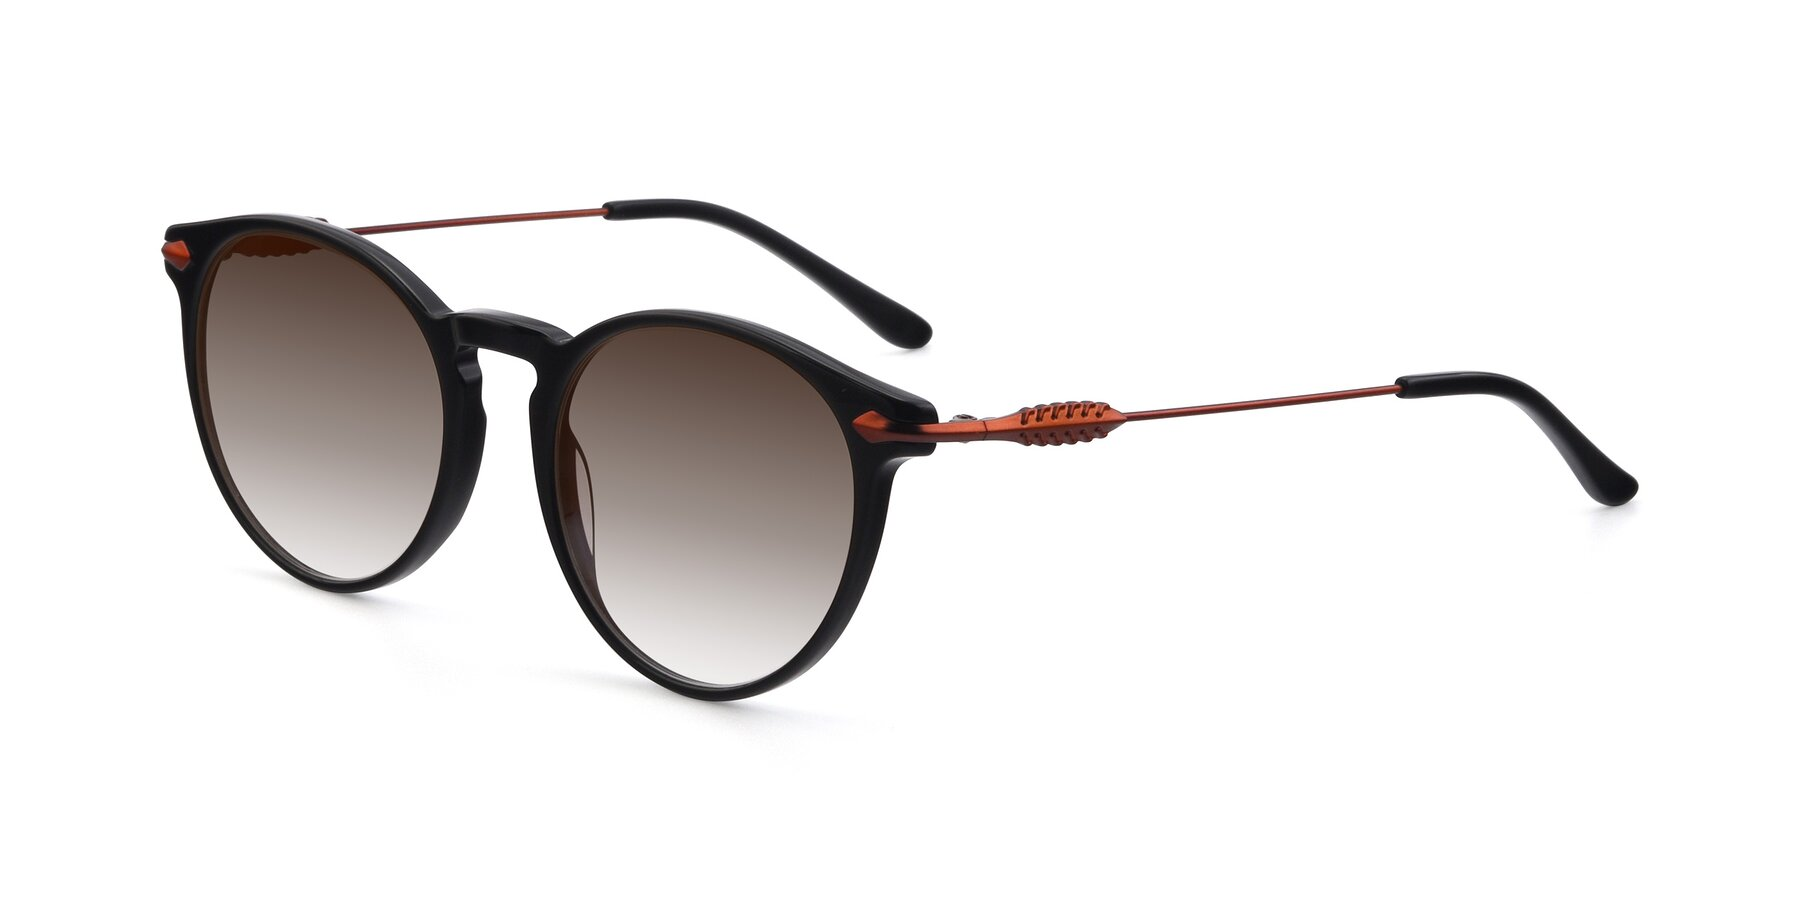 Angle of 17660 in Black with Brown Gradient Lenses